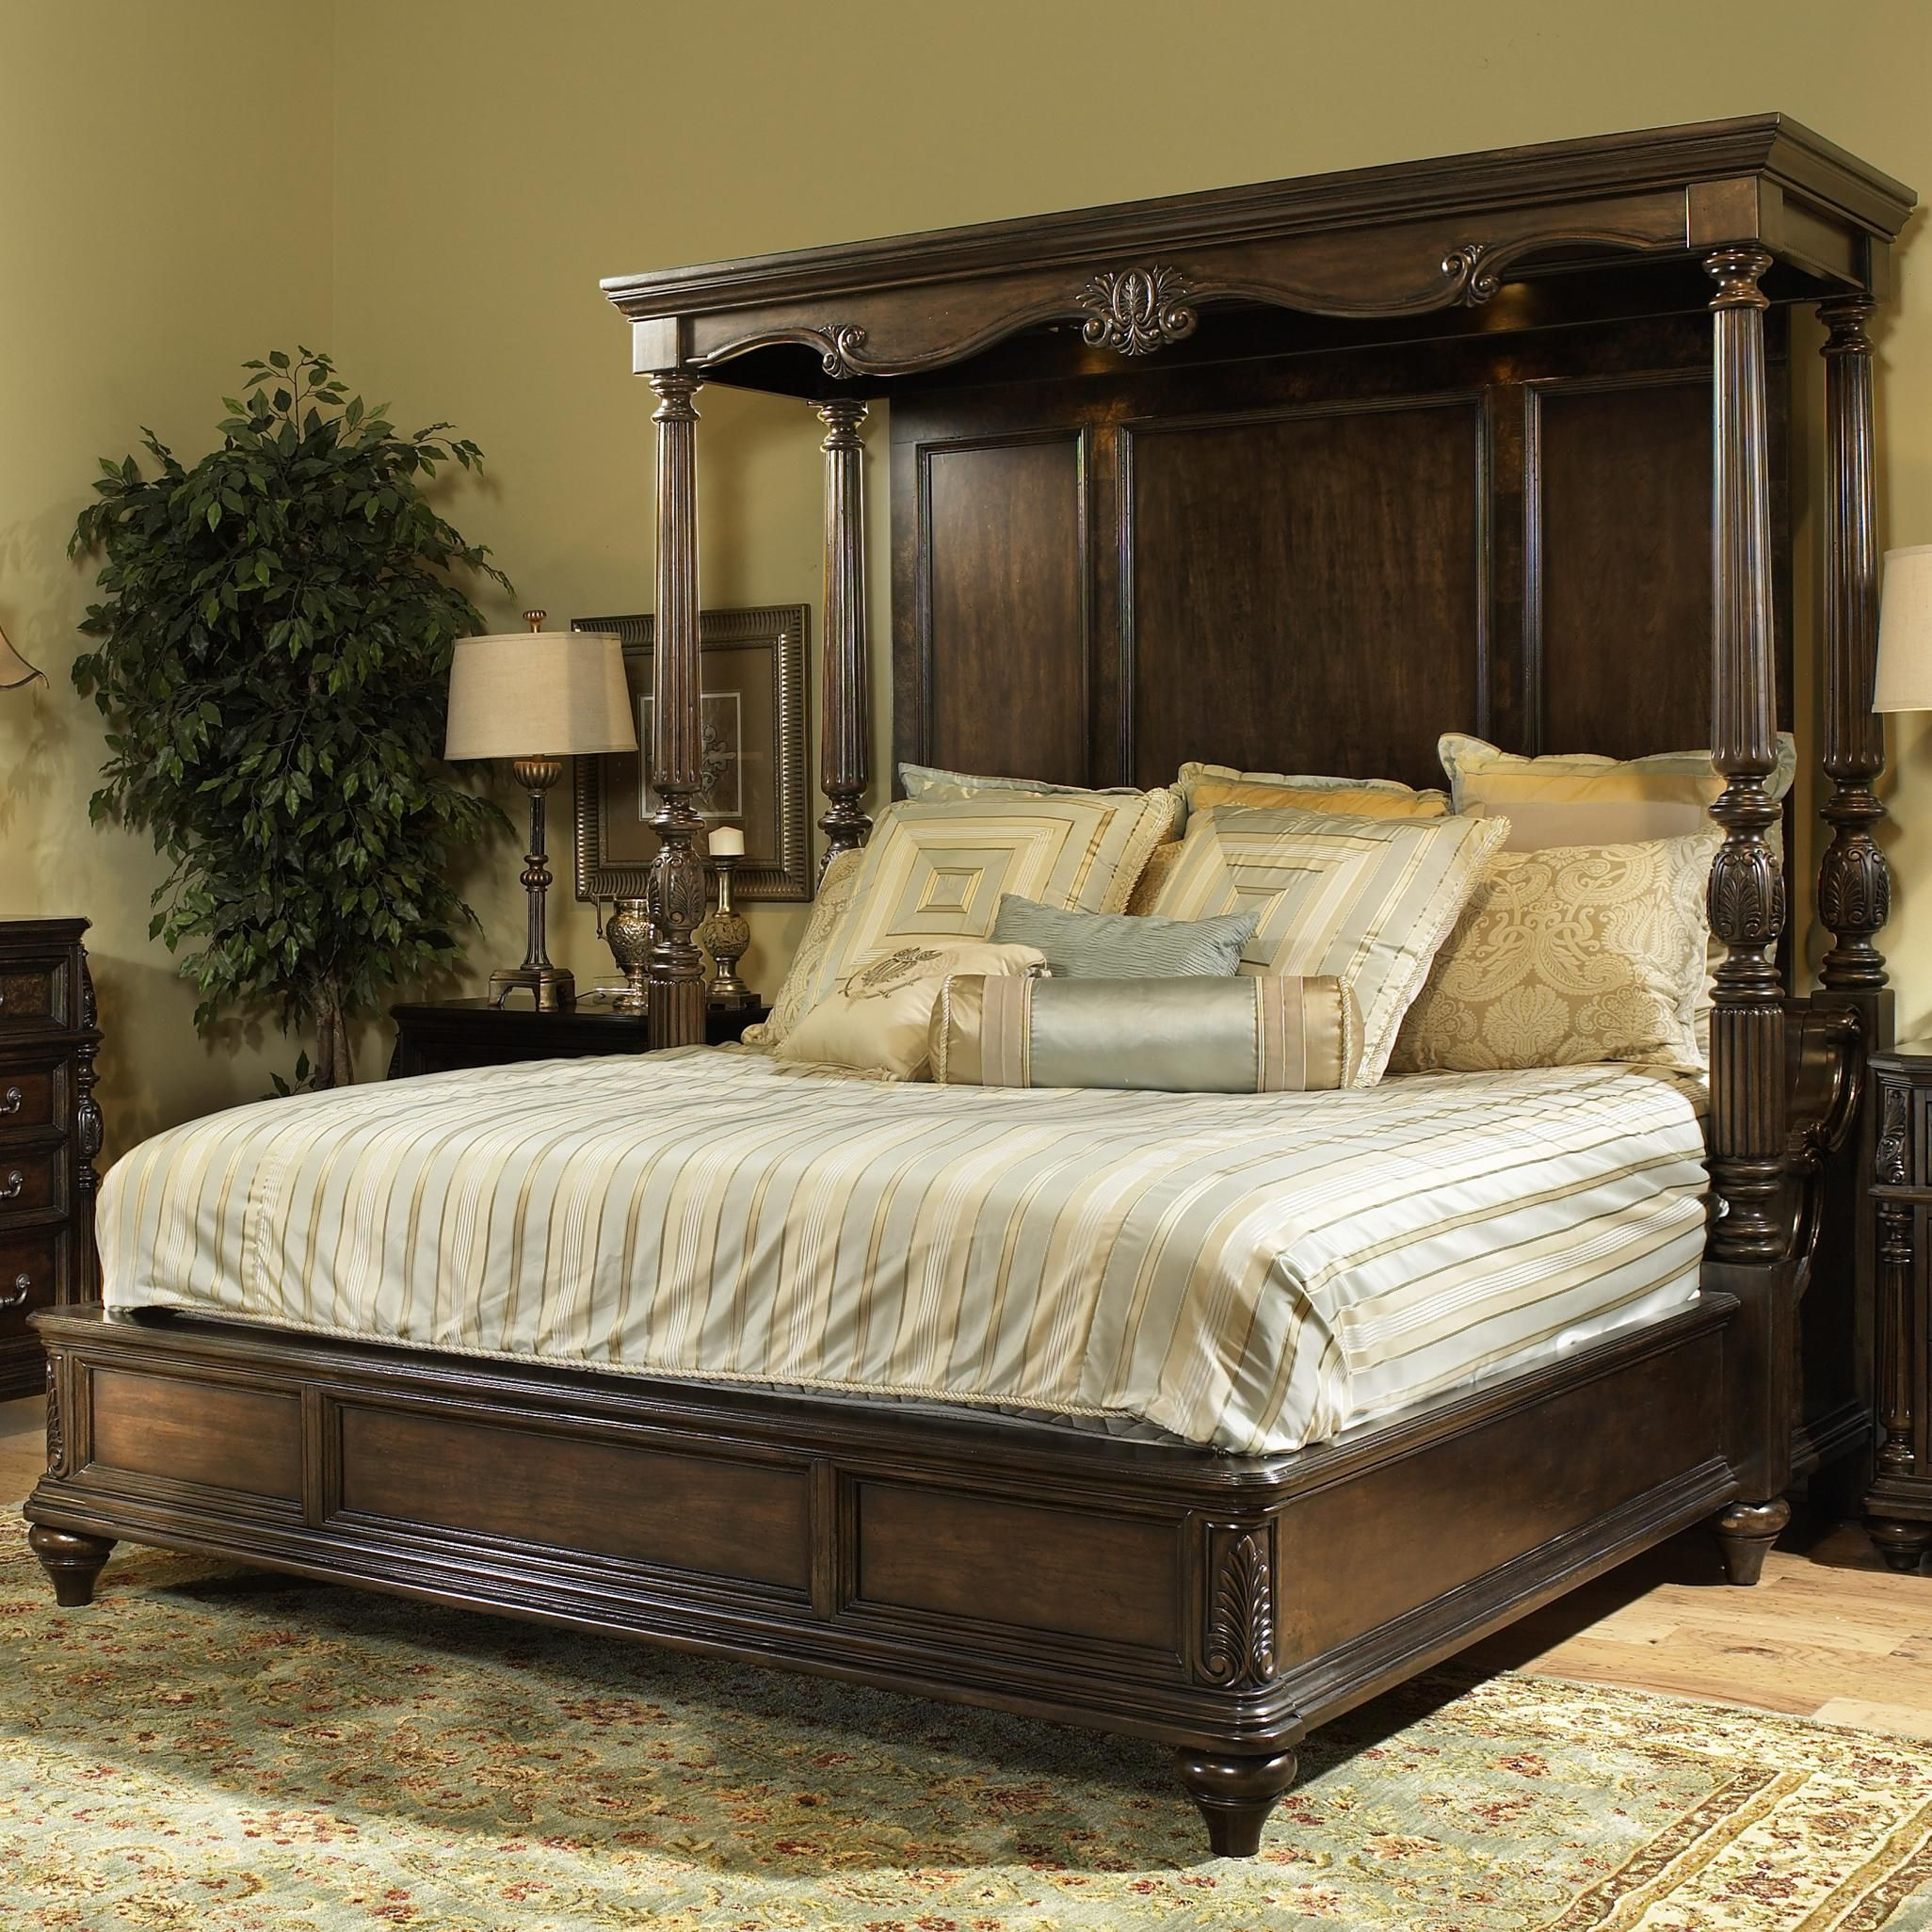 Chateau Marmont King Canopy Bed By Fairmont Designs Available At Royal Furniture For A Limited